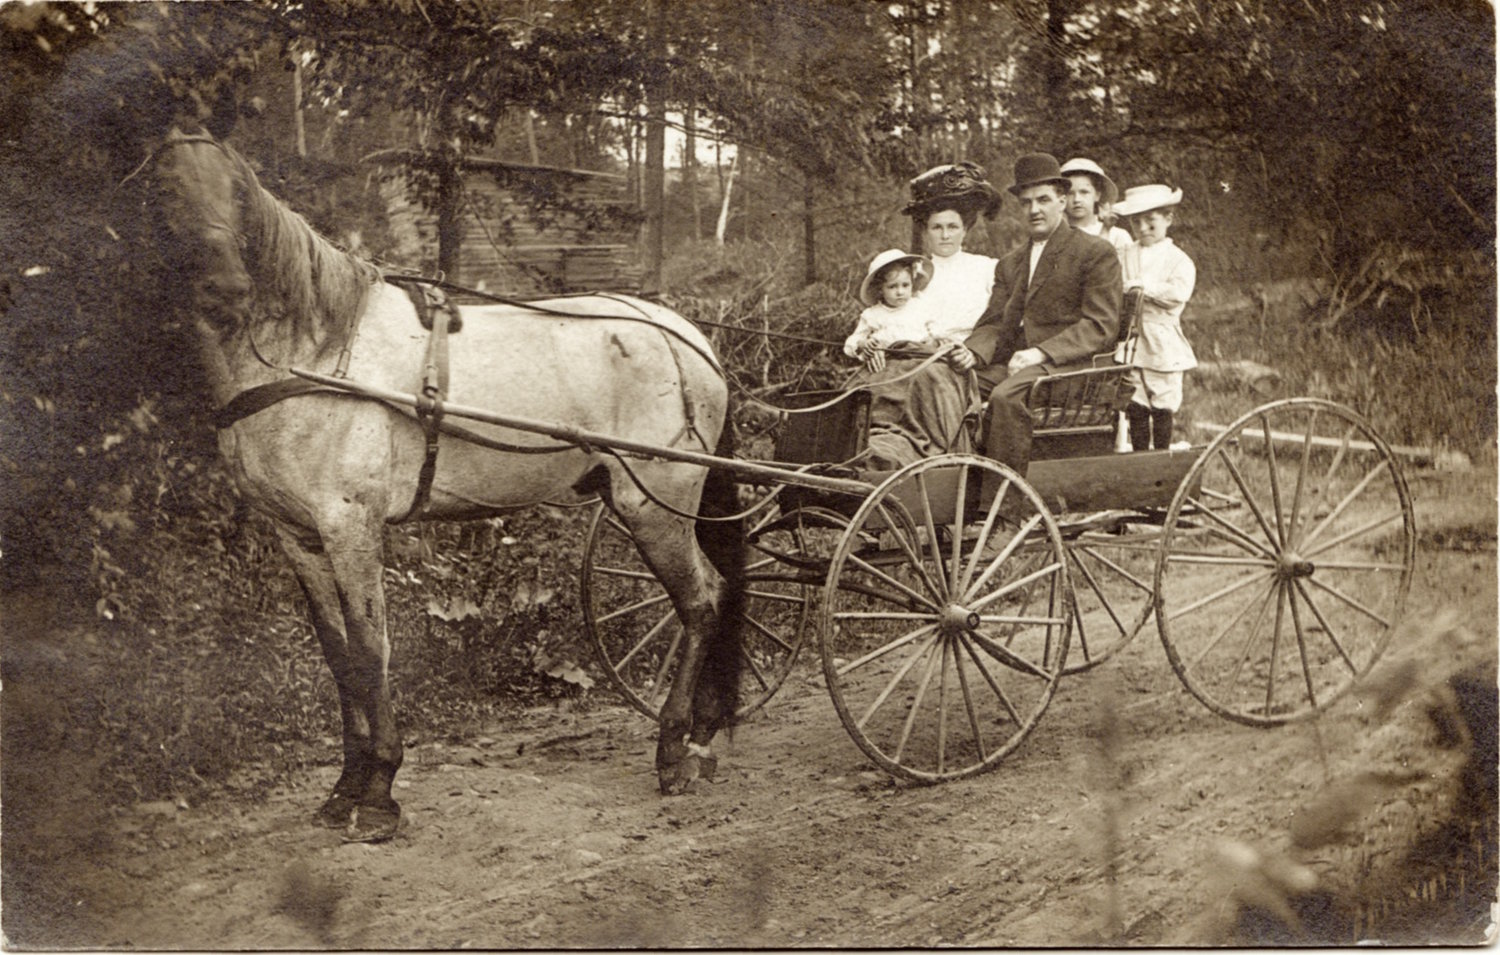 Edward Costlow (1876-1945) and Family